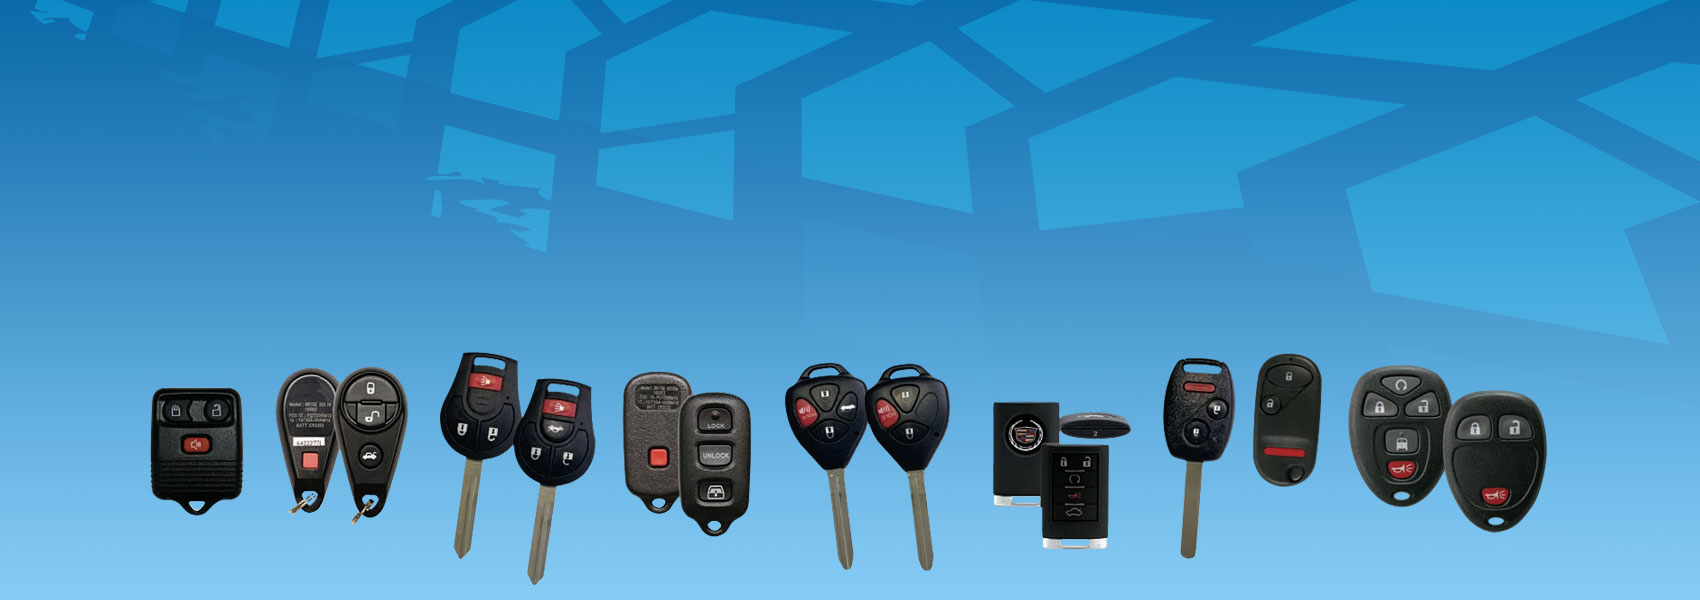 hight resolution of remote keyless entry remote head keys and proximity remotes